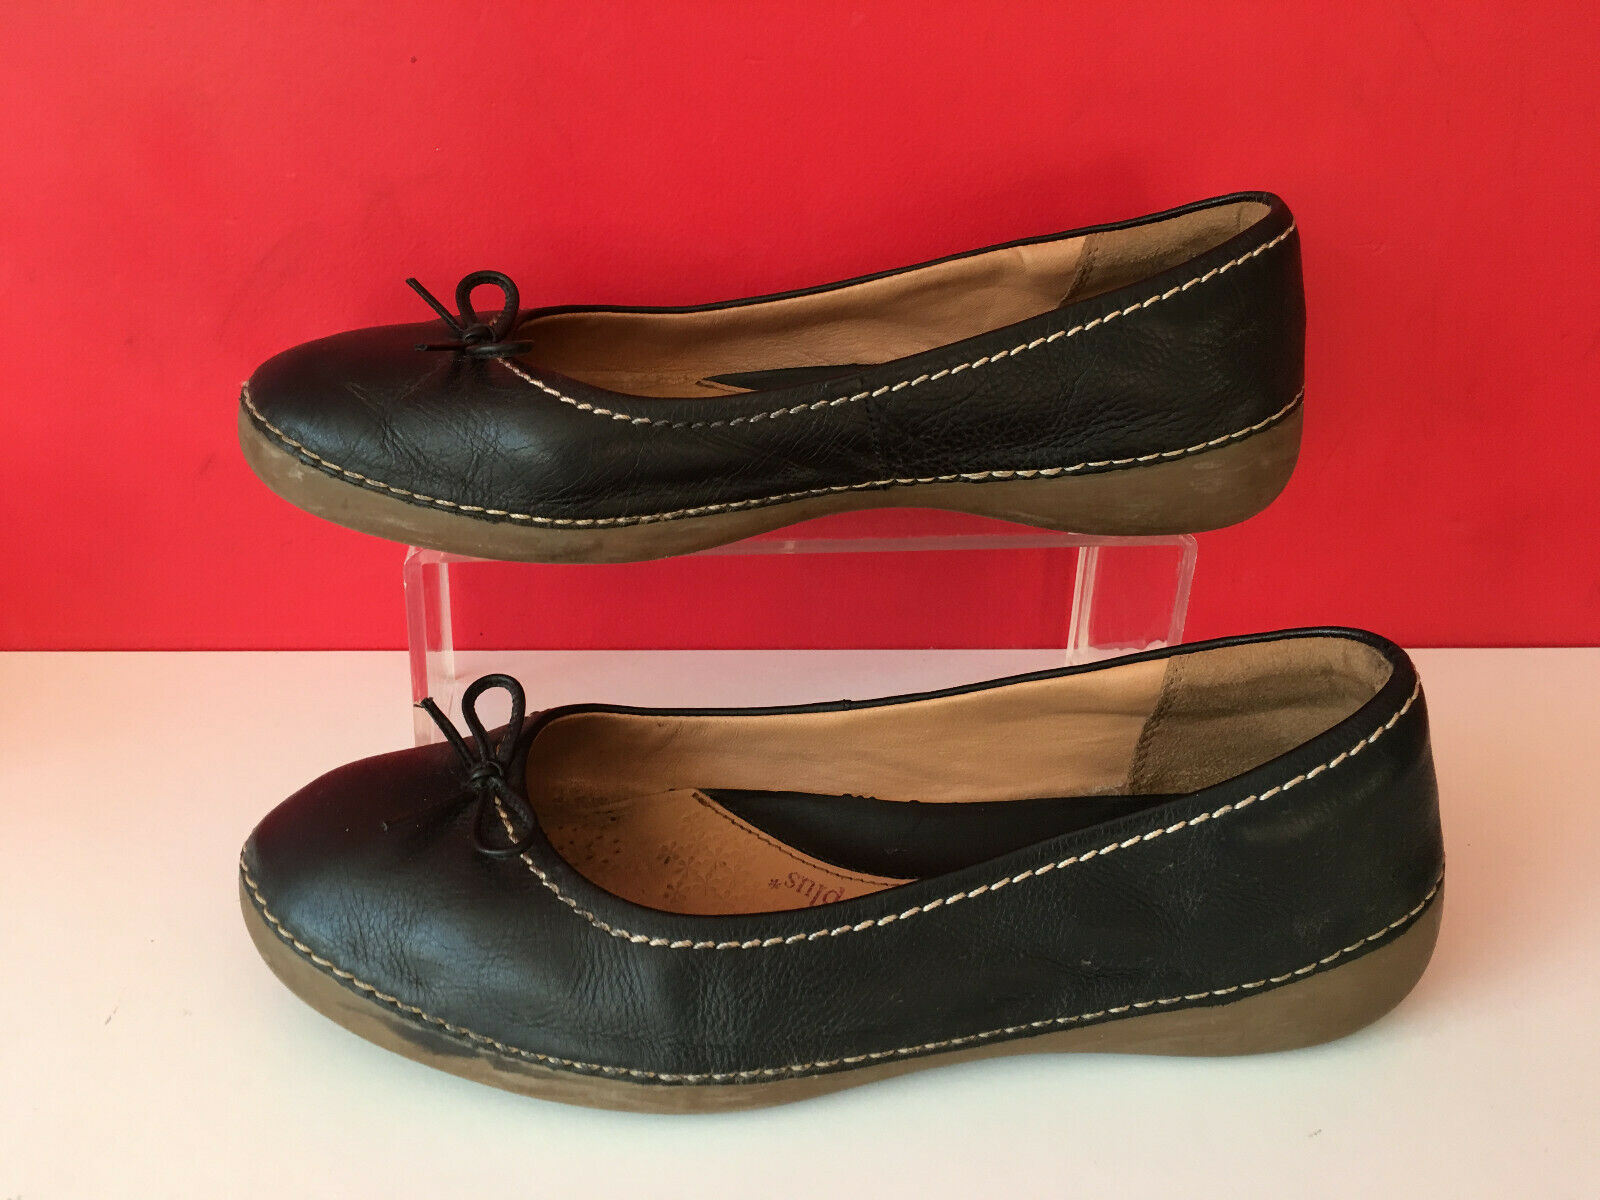 Clarks Plus Black Leather Comfort Pump Ballet Dolly Flat shoes UK 8 EUR 42